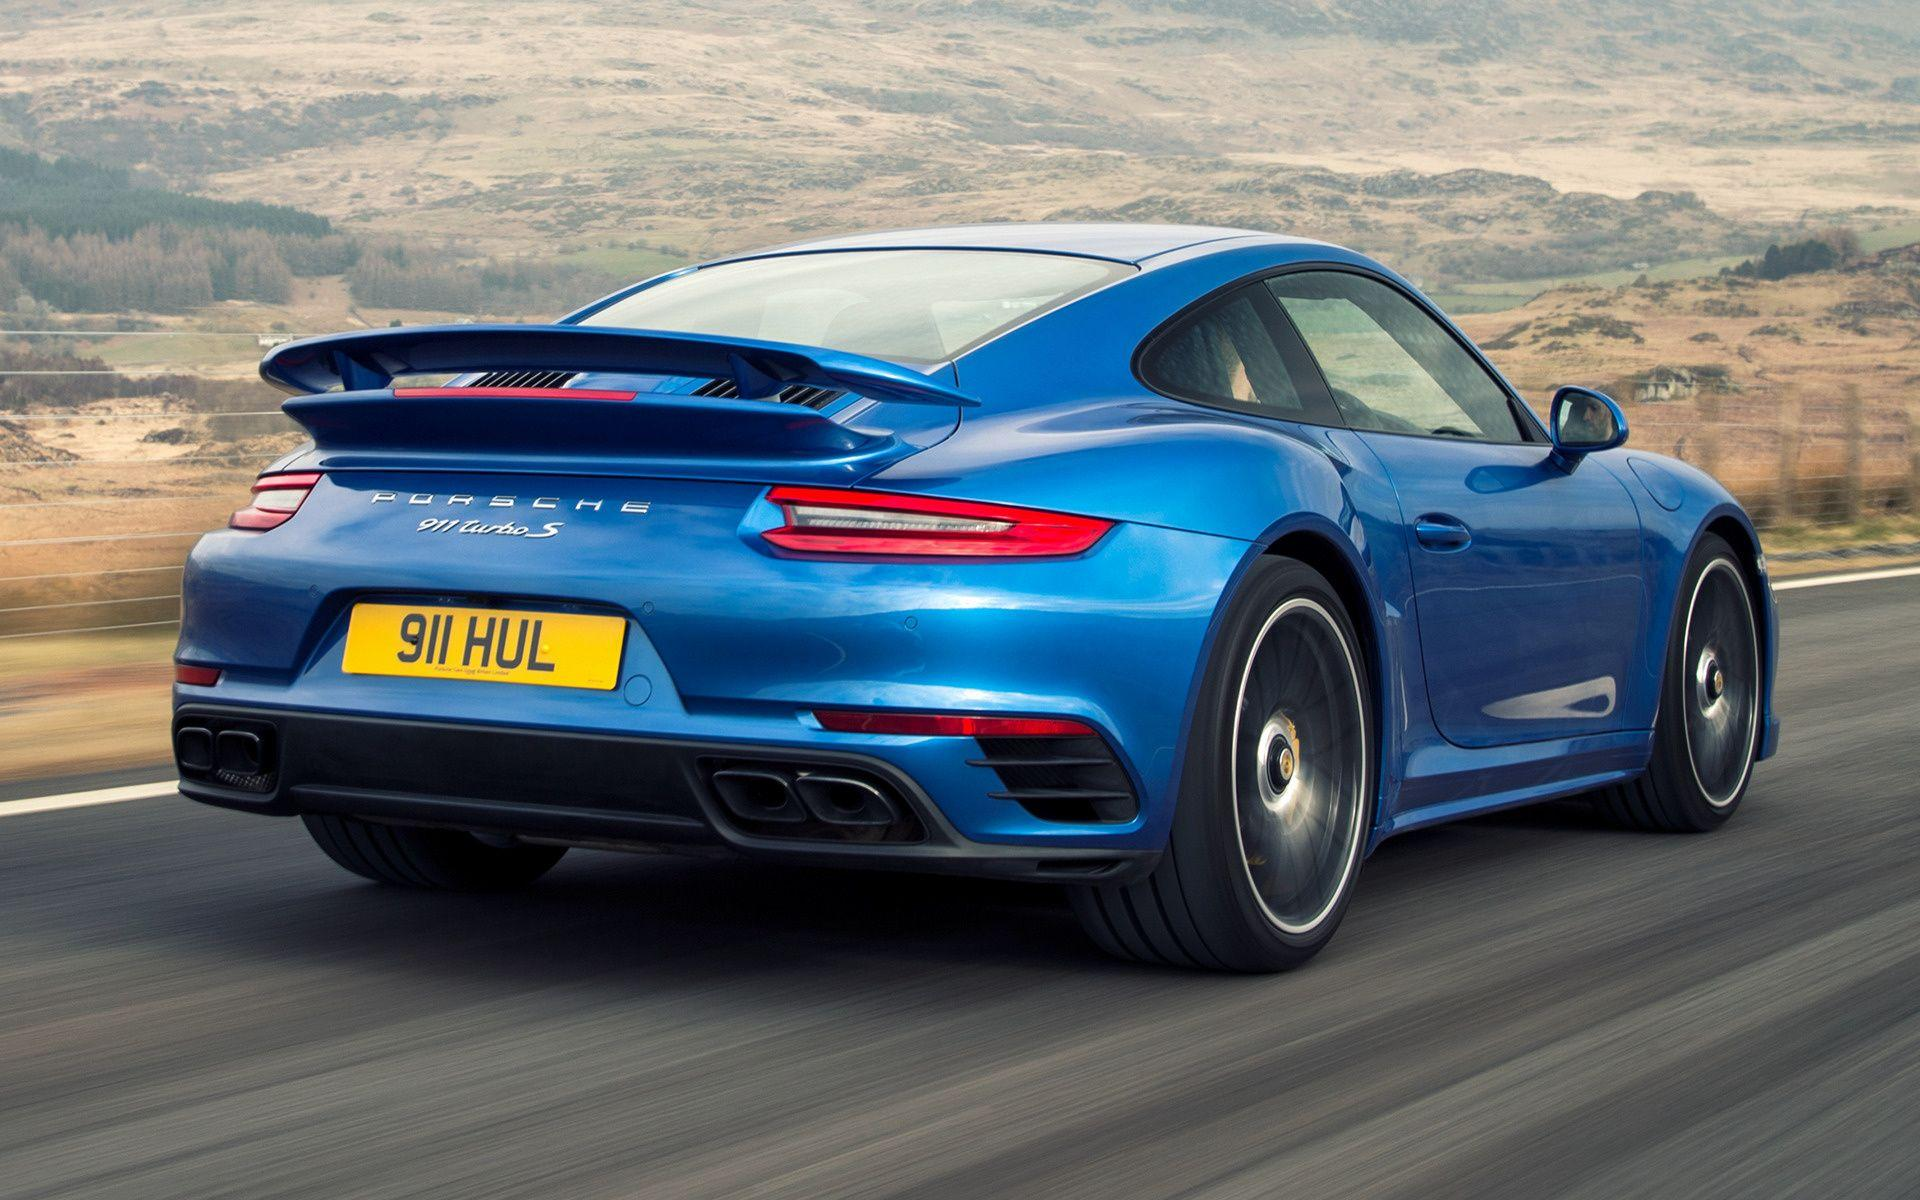 Download New 2016 Porsche 911 Turbo S Wallpapers For Iphone